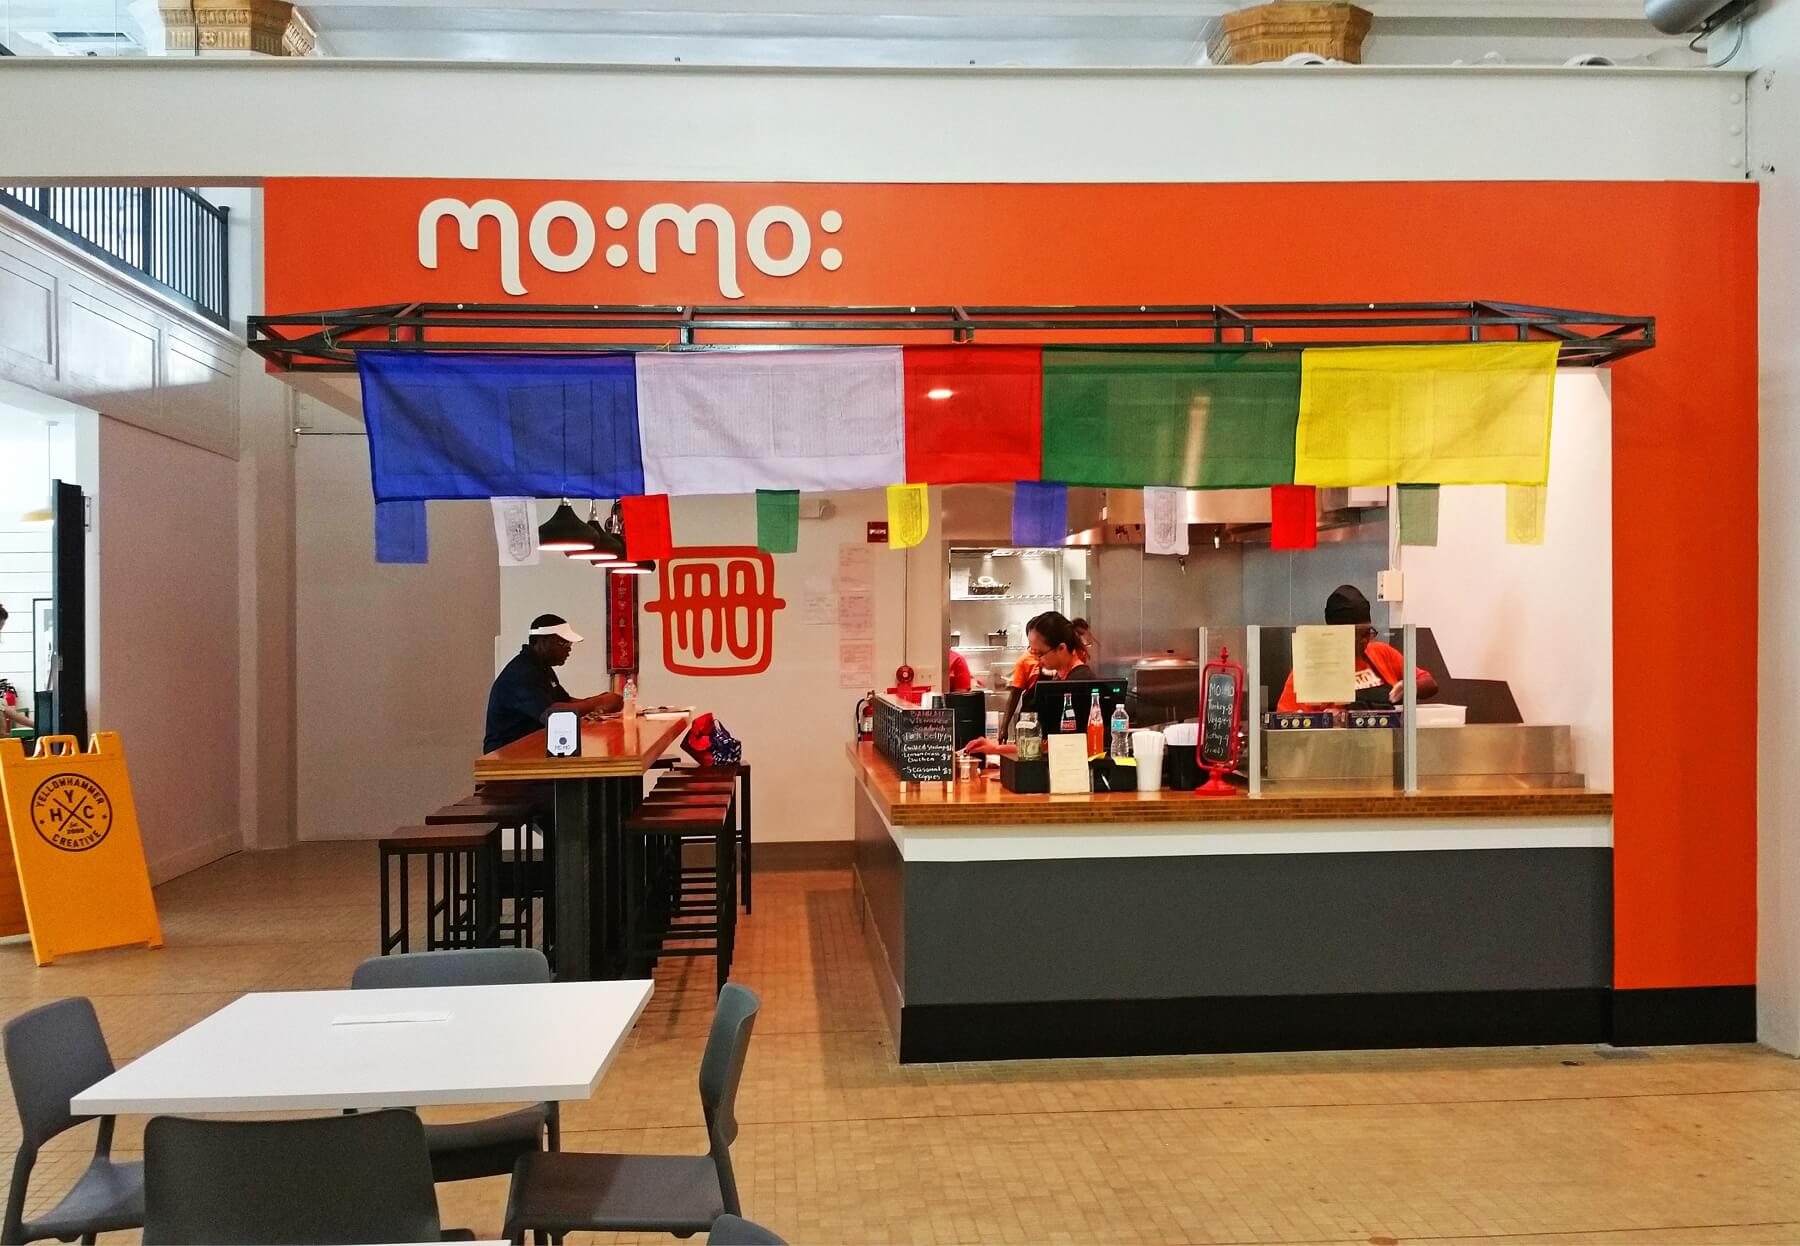 MO:MO: serves a simple yet tantalizing menu of Momos,or Nepalese dumplings, and Banh mi, or Vietnamese sandwiches.